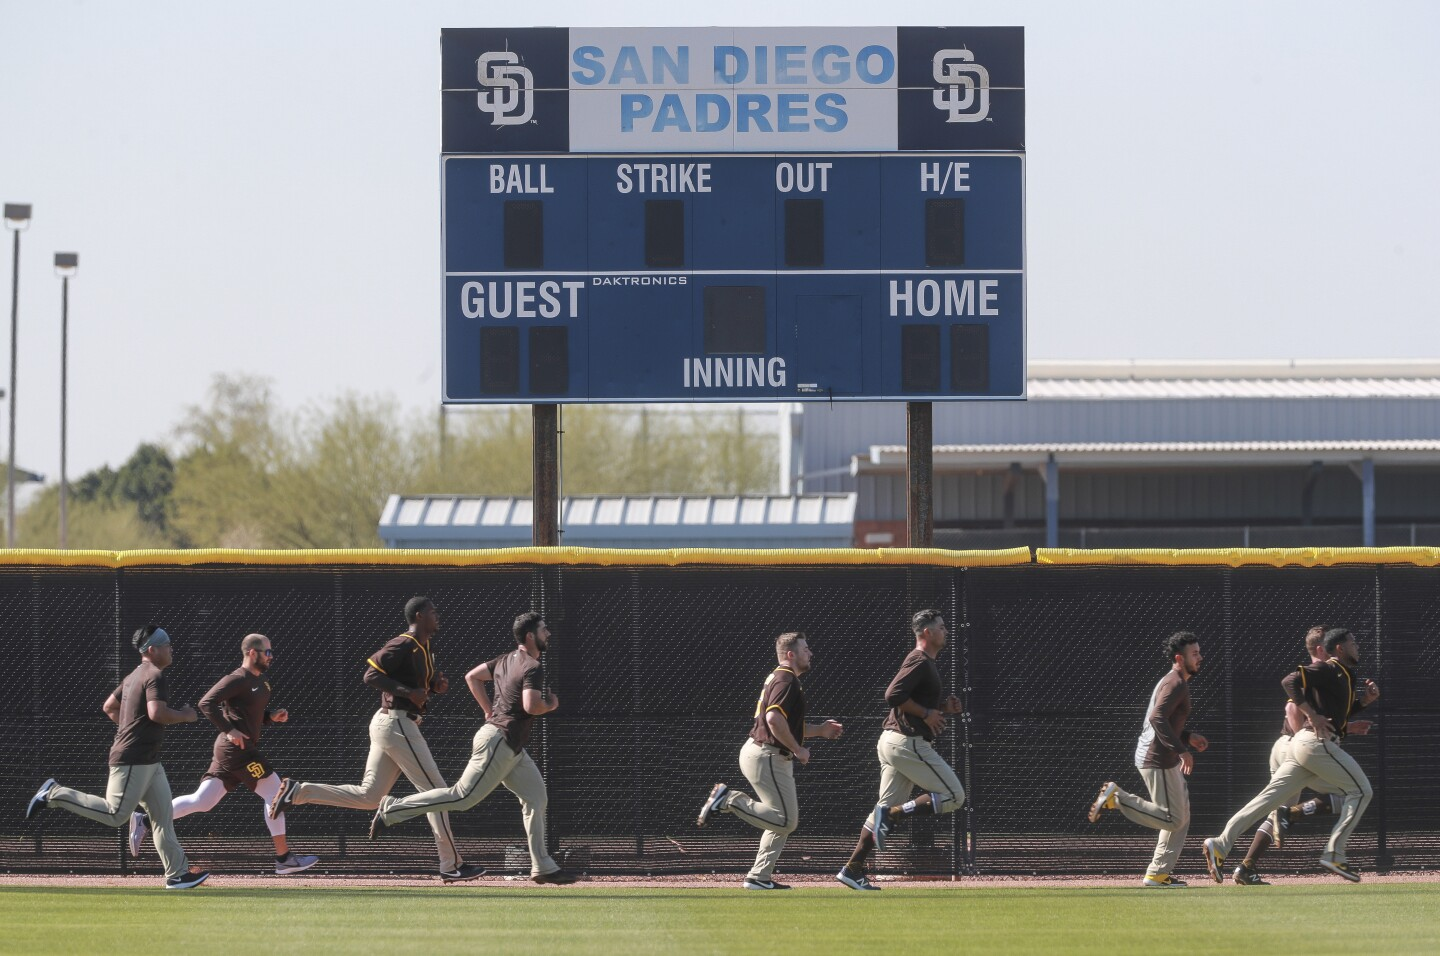 Padres players run during Padres spring training at the Peoria Sports Complex on Thursday, February 13, 2020 in Peoria, Arizona.